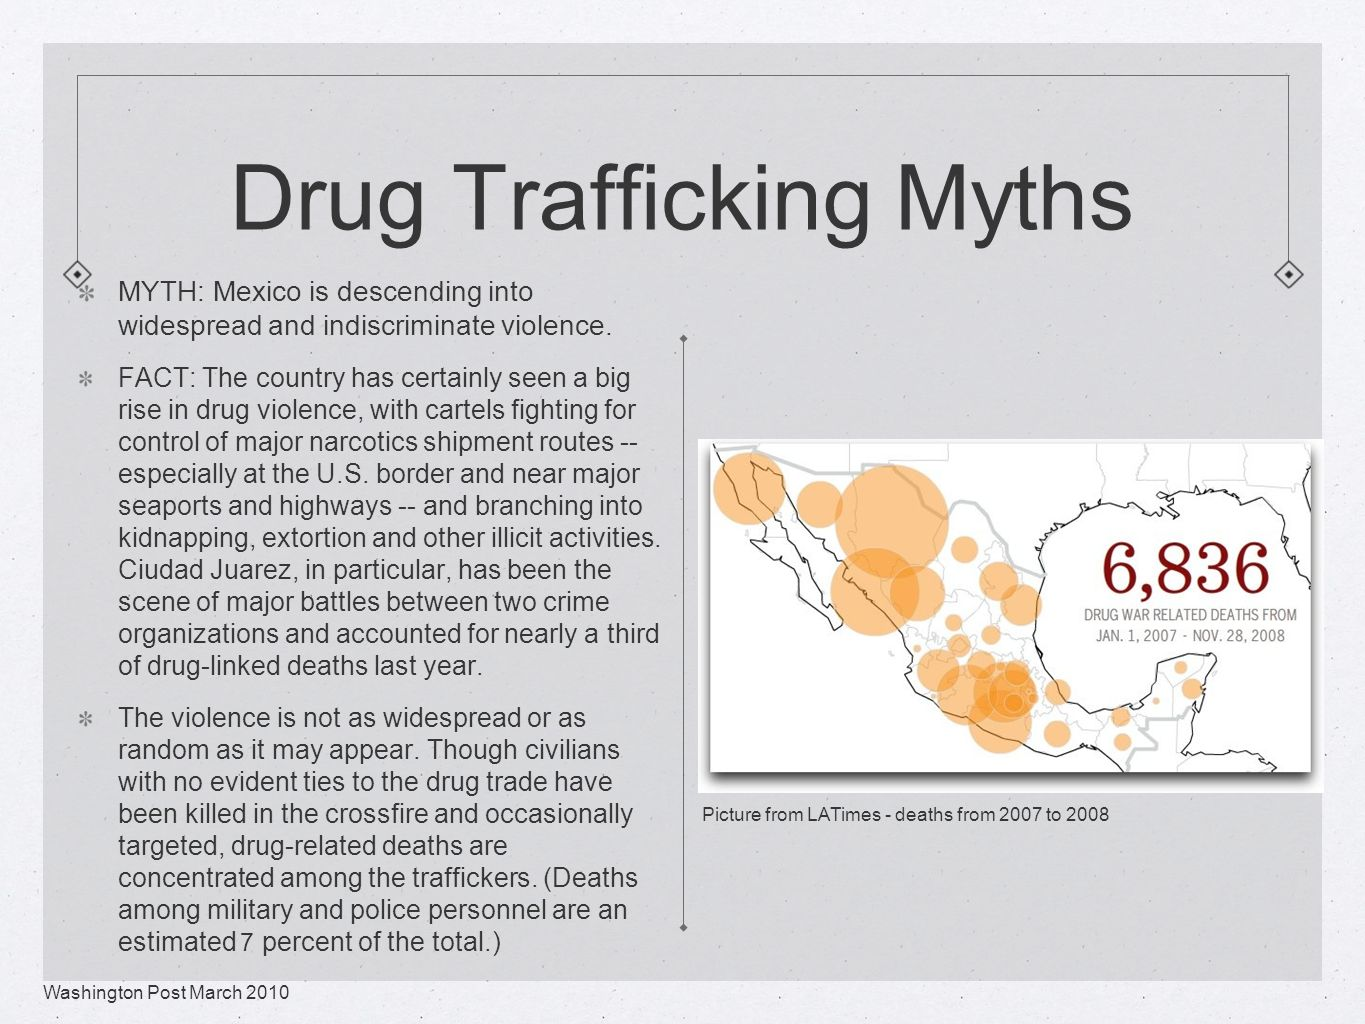 Drug Trafficking Myths MYTH: Mexico is descending into widespread and indiscriminate violence.